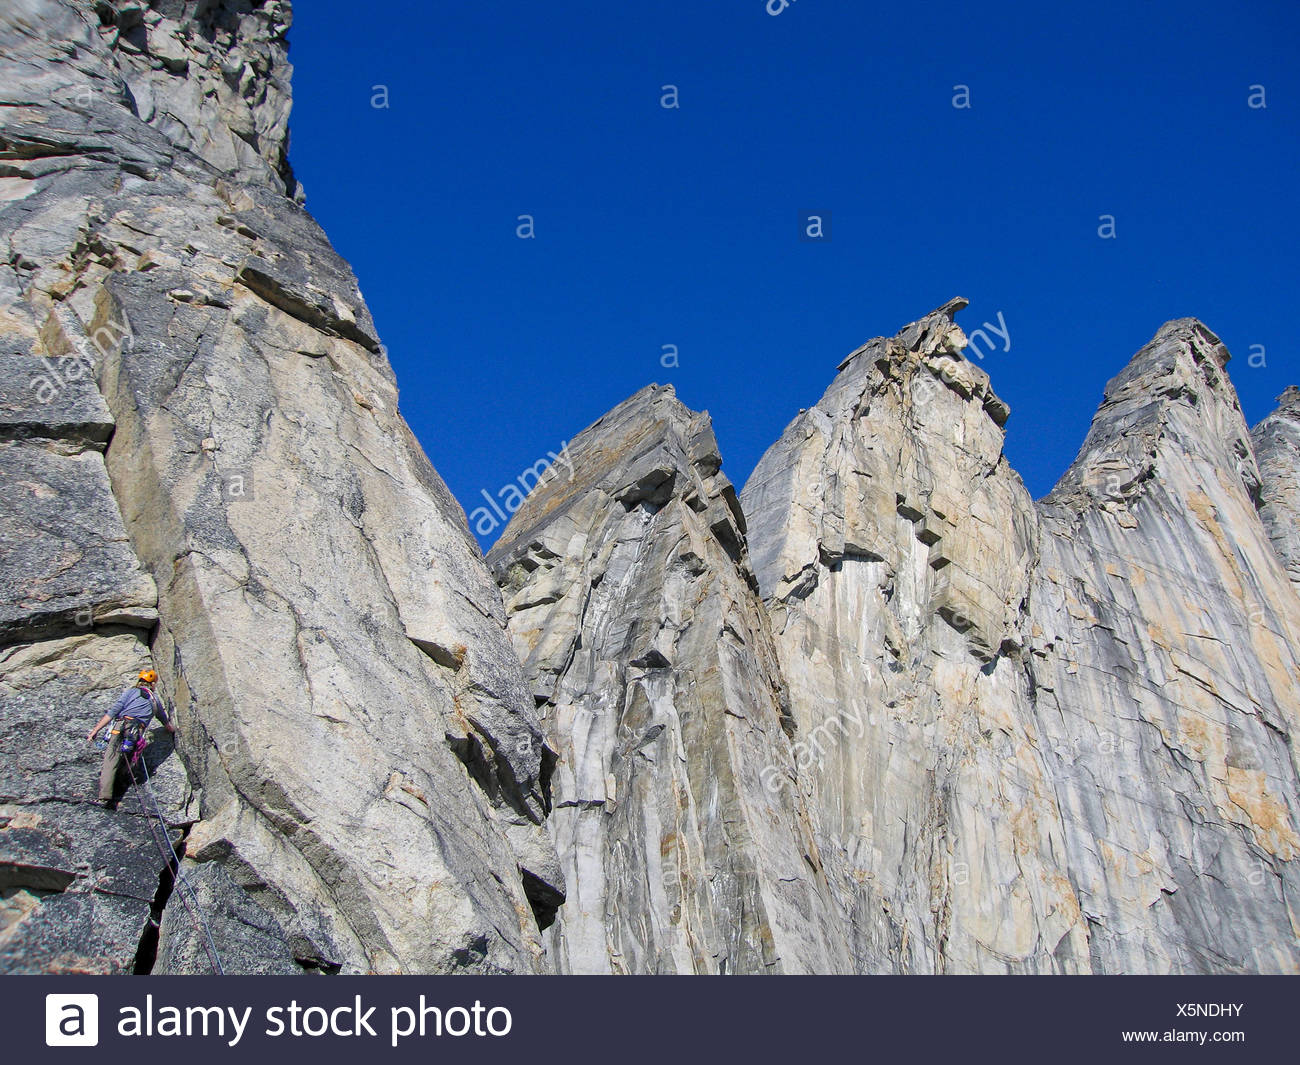 A rock climber begins the fifth pitch of The Pillared Arete on Caliban East, Arrigetch Peaks, Brooks Range, Alaska - Stock Image